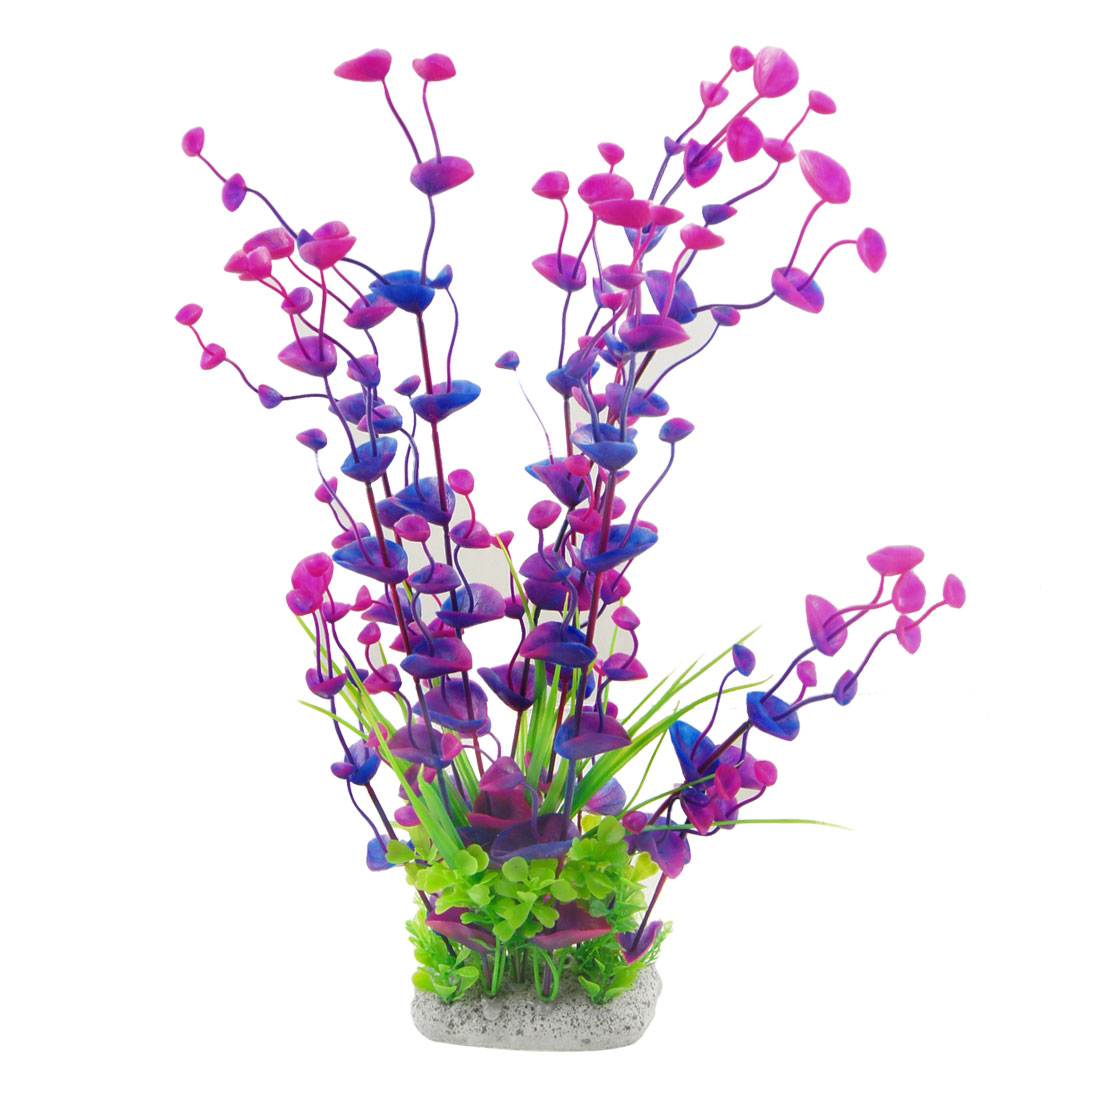 "Fish Tank 15.3"" Emulational Water Plant Decor Purple Blue"